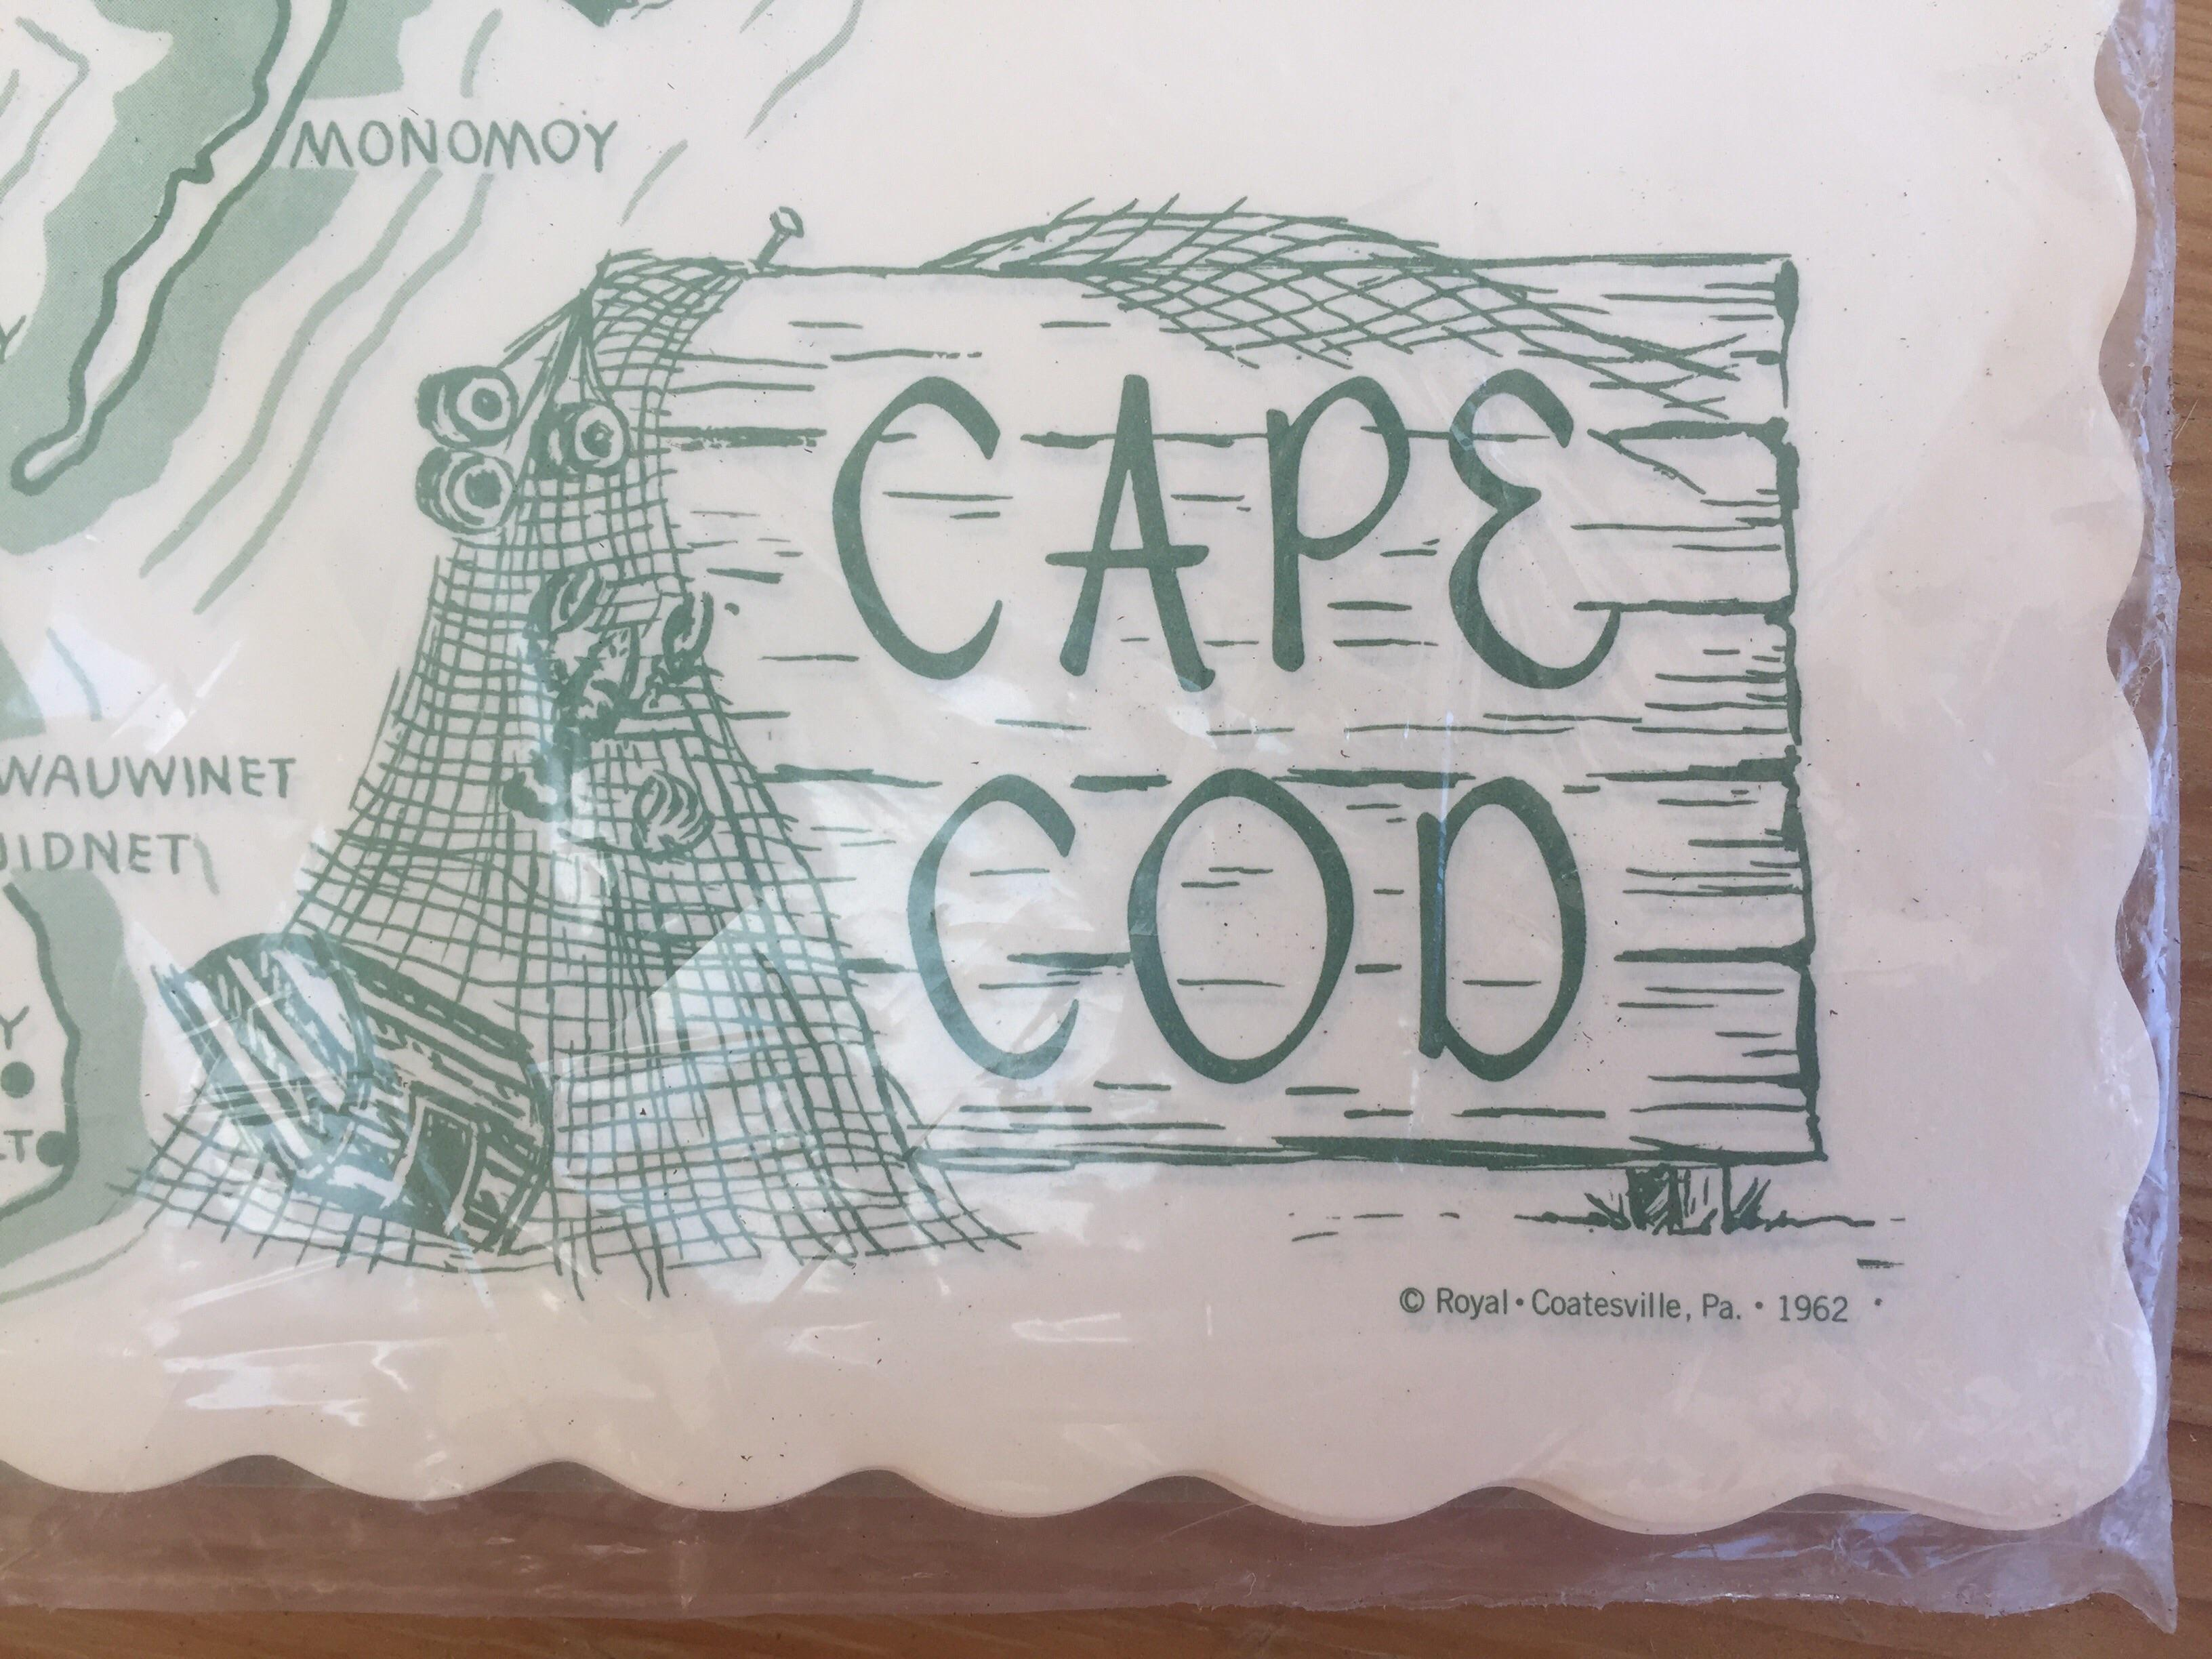 cape cod paper Get cape cod paper pack - 4 1/2 x 6 1/2 online or find other 4 1/2 x 6 1/2 products from hobbylobbycom.